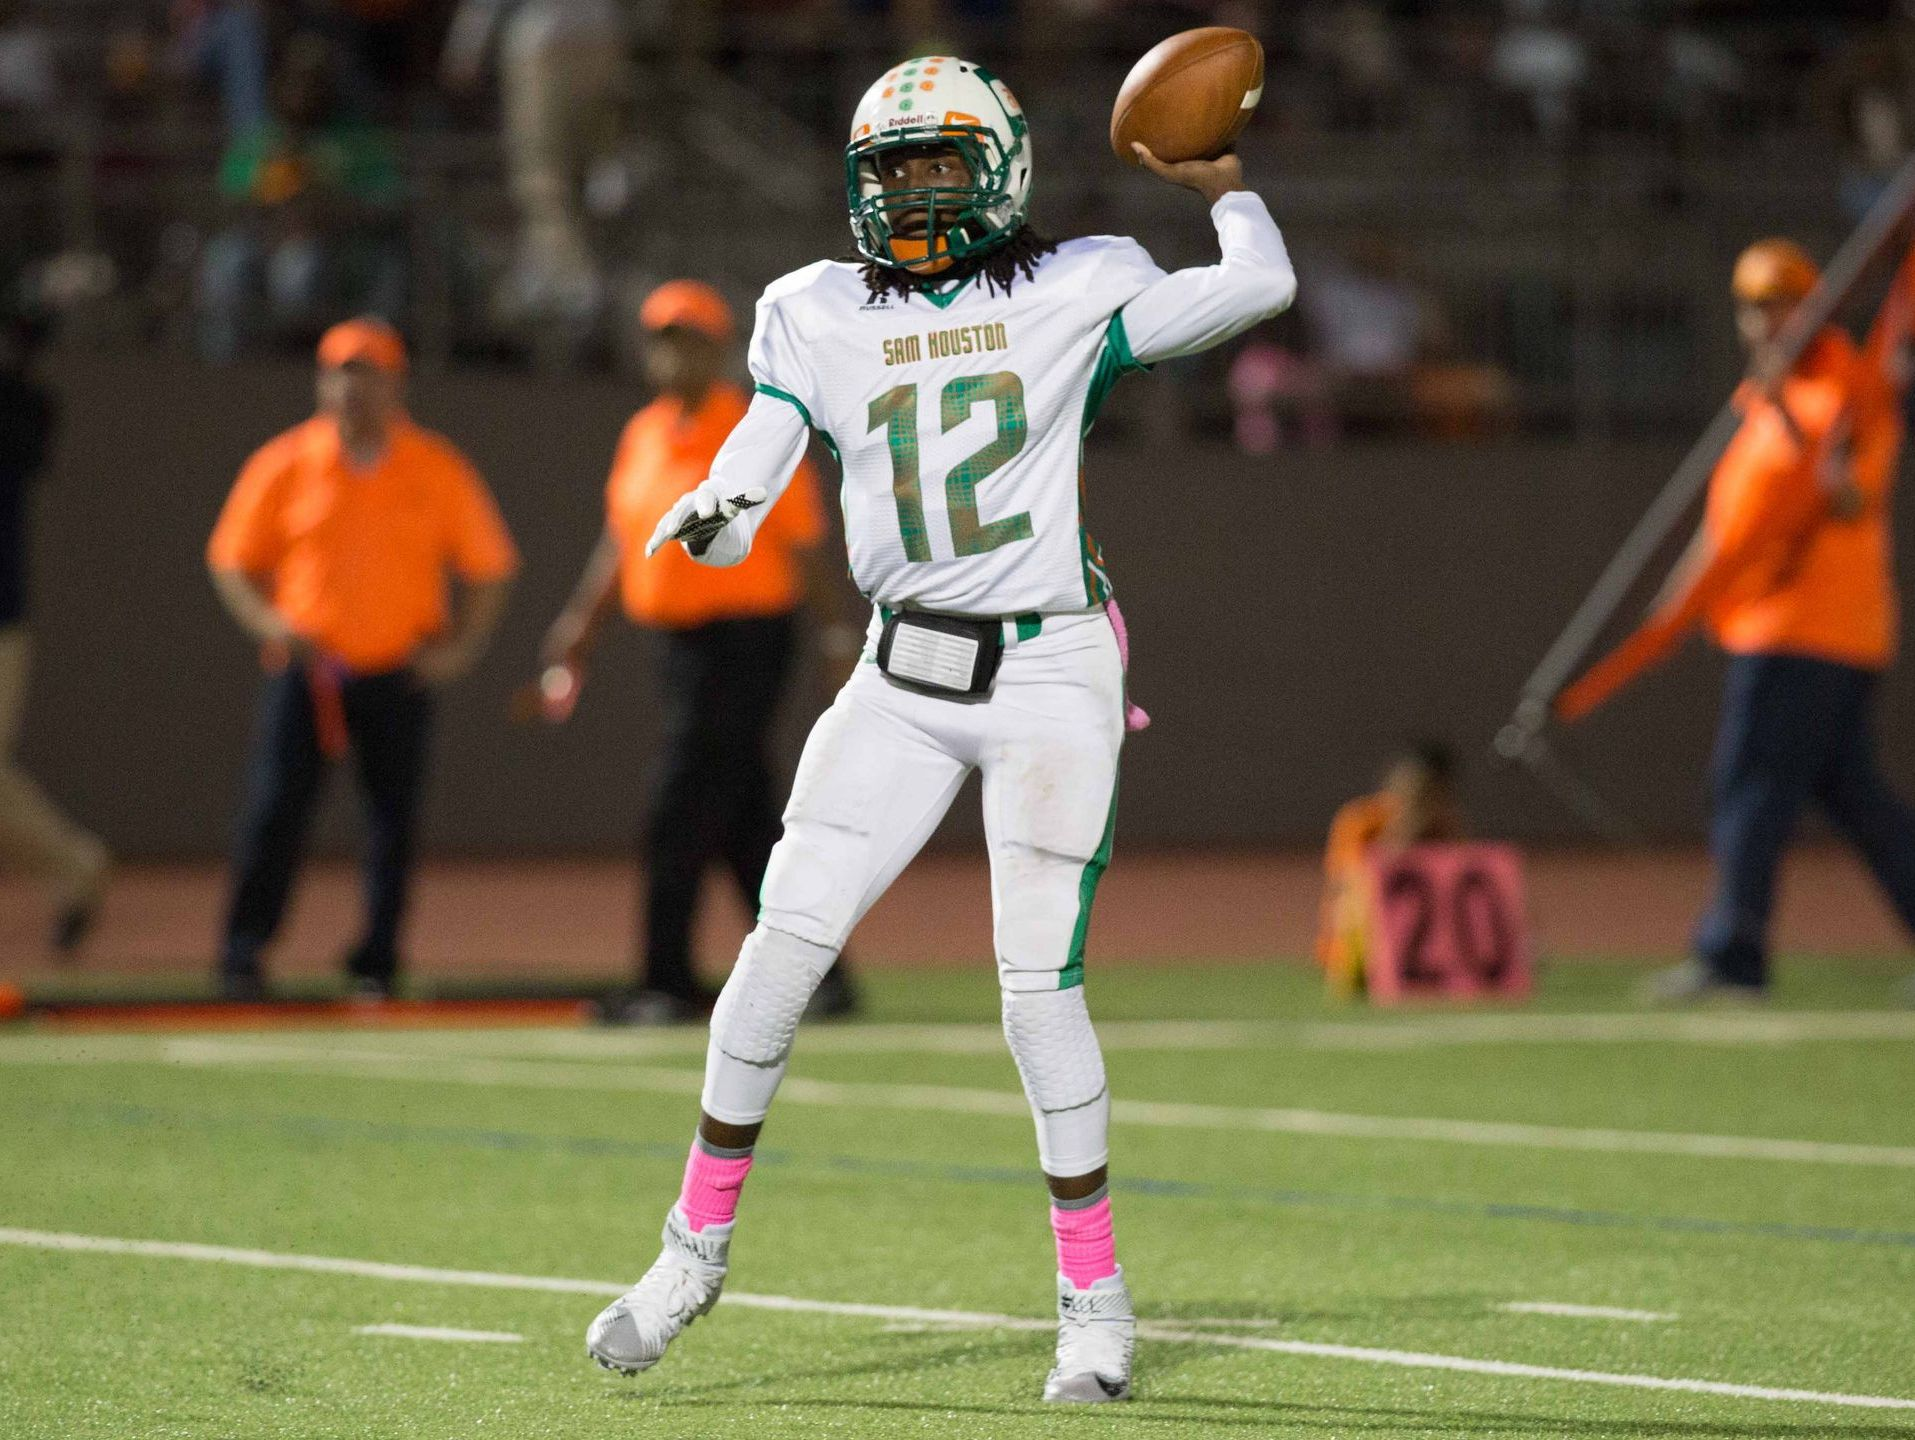 Sam Houston senior quarterback Raymonte Prime has helped move the Hurricanes to within one win of their first 10-0 regular season since 1989.